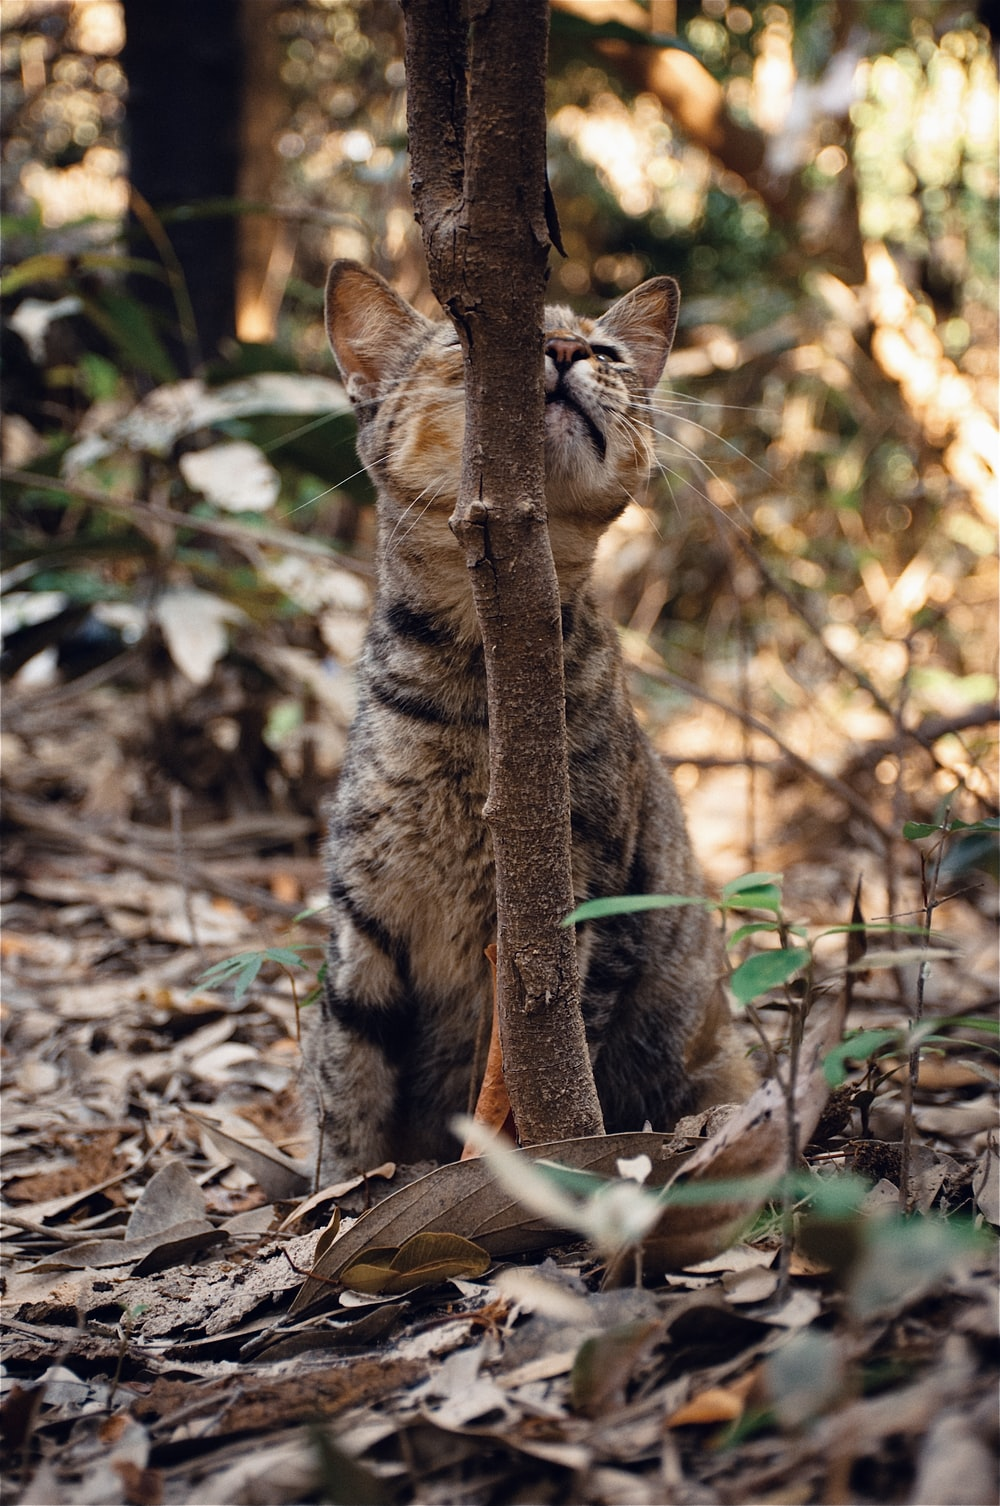 brown tabby cat on brown dried leaves during daytime